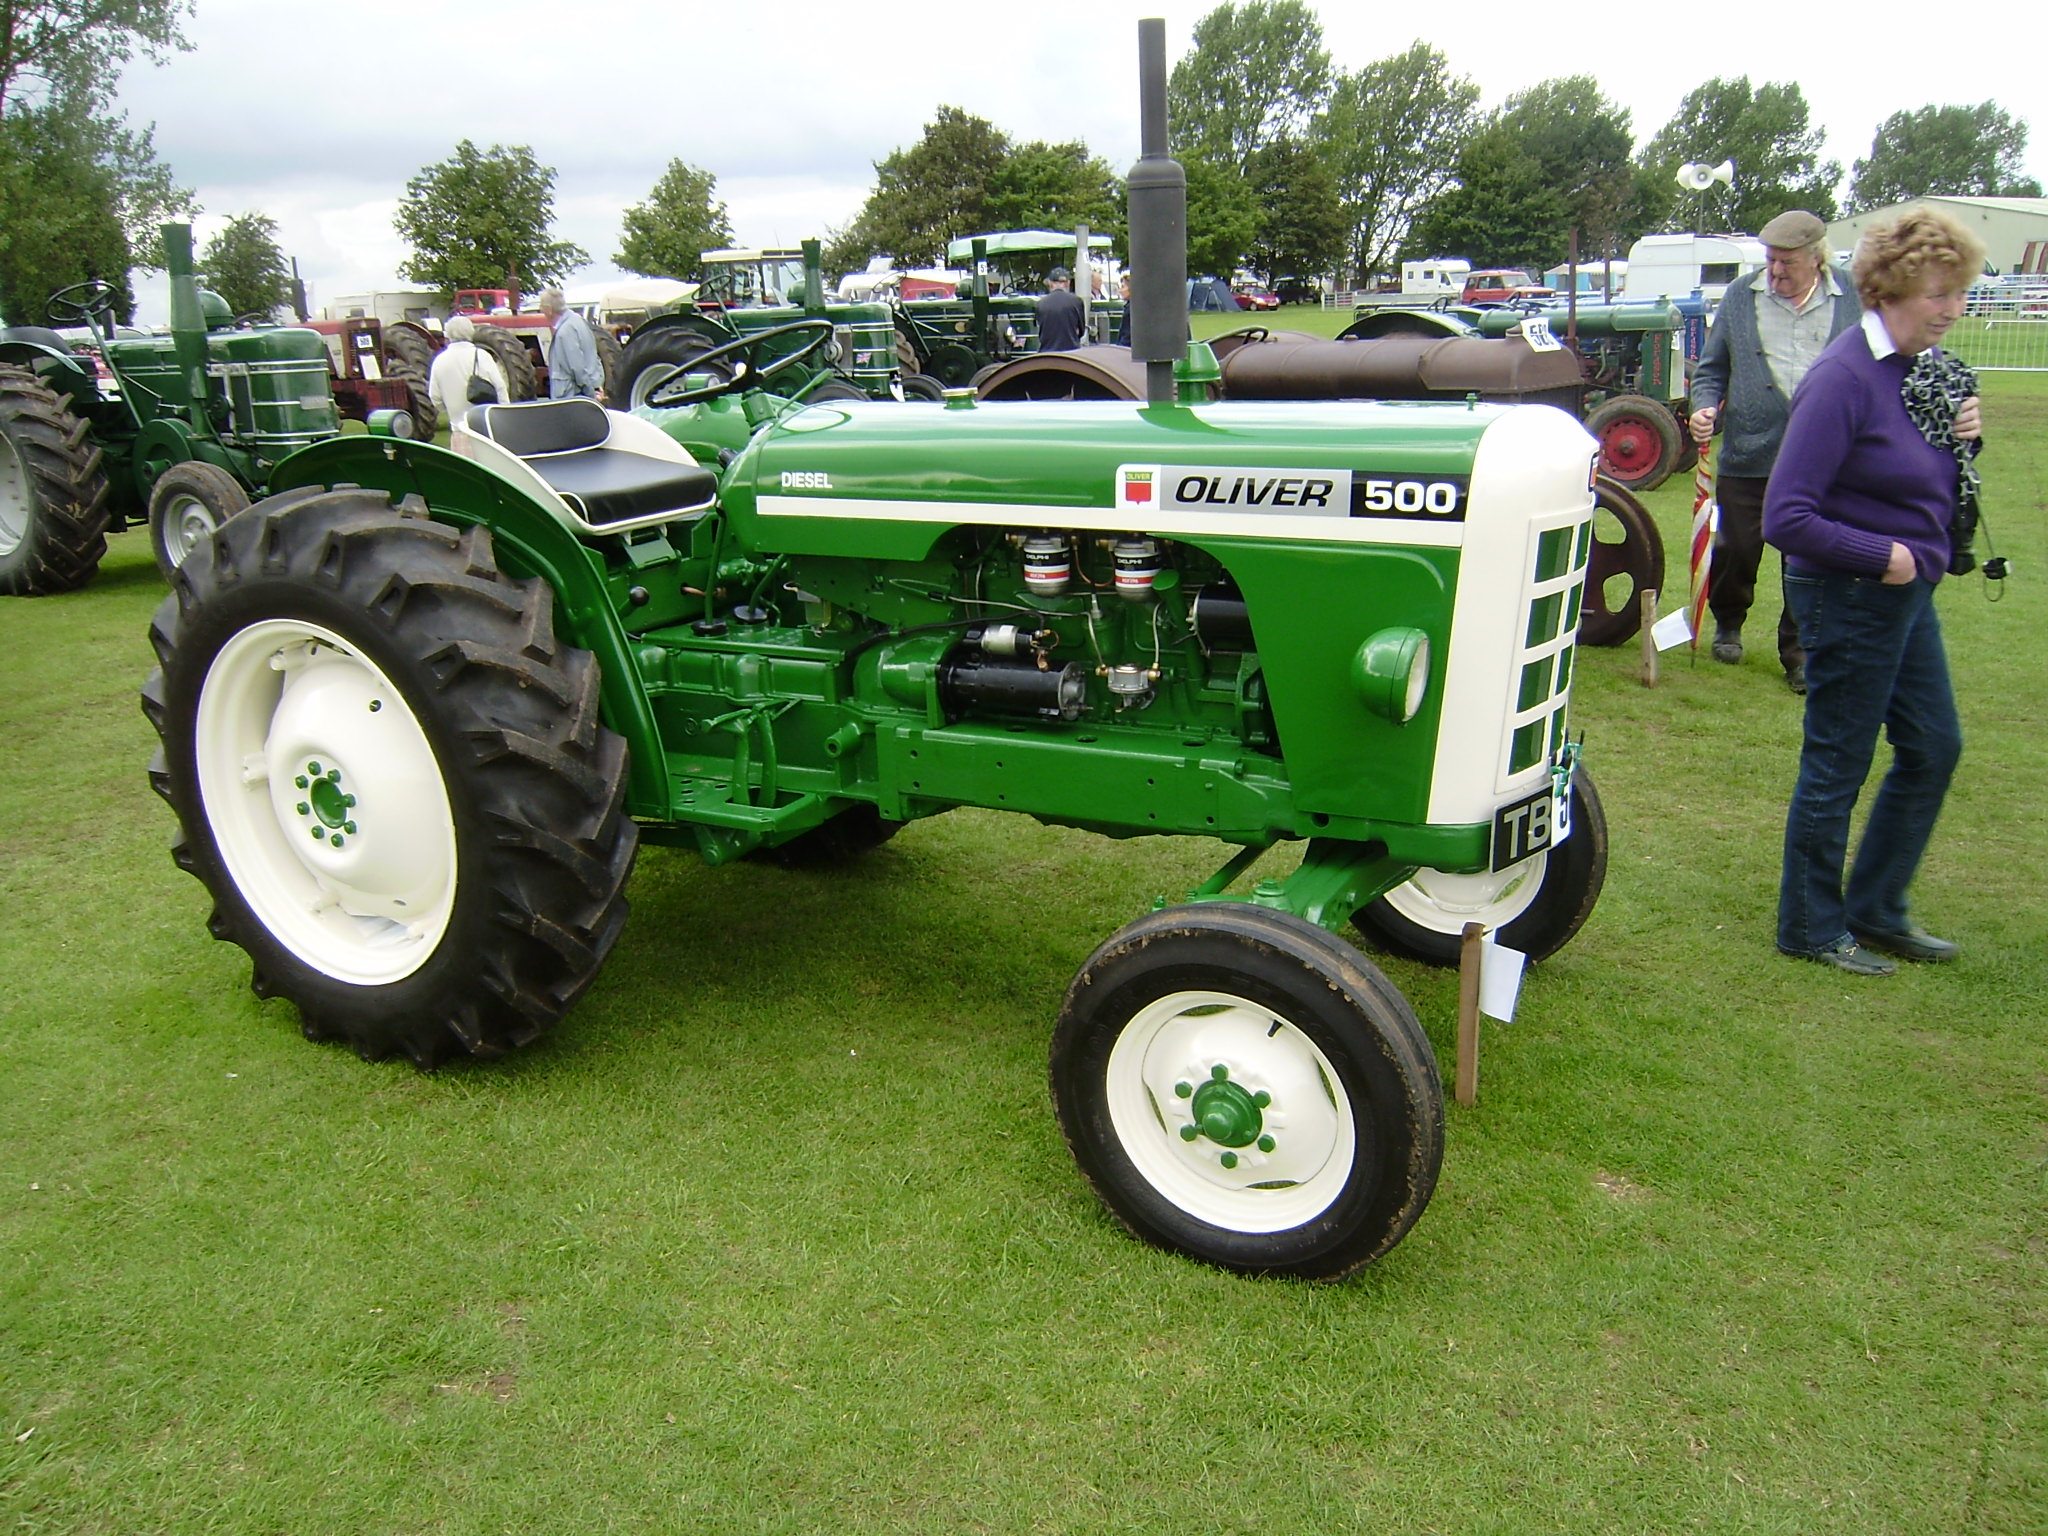 Fiat Built Oliver Tractors : Oliver tractor construction plant wiki the classic